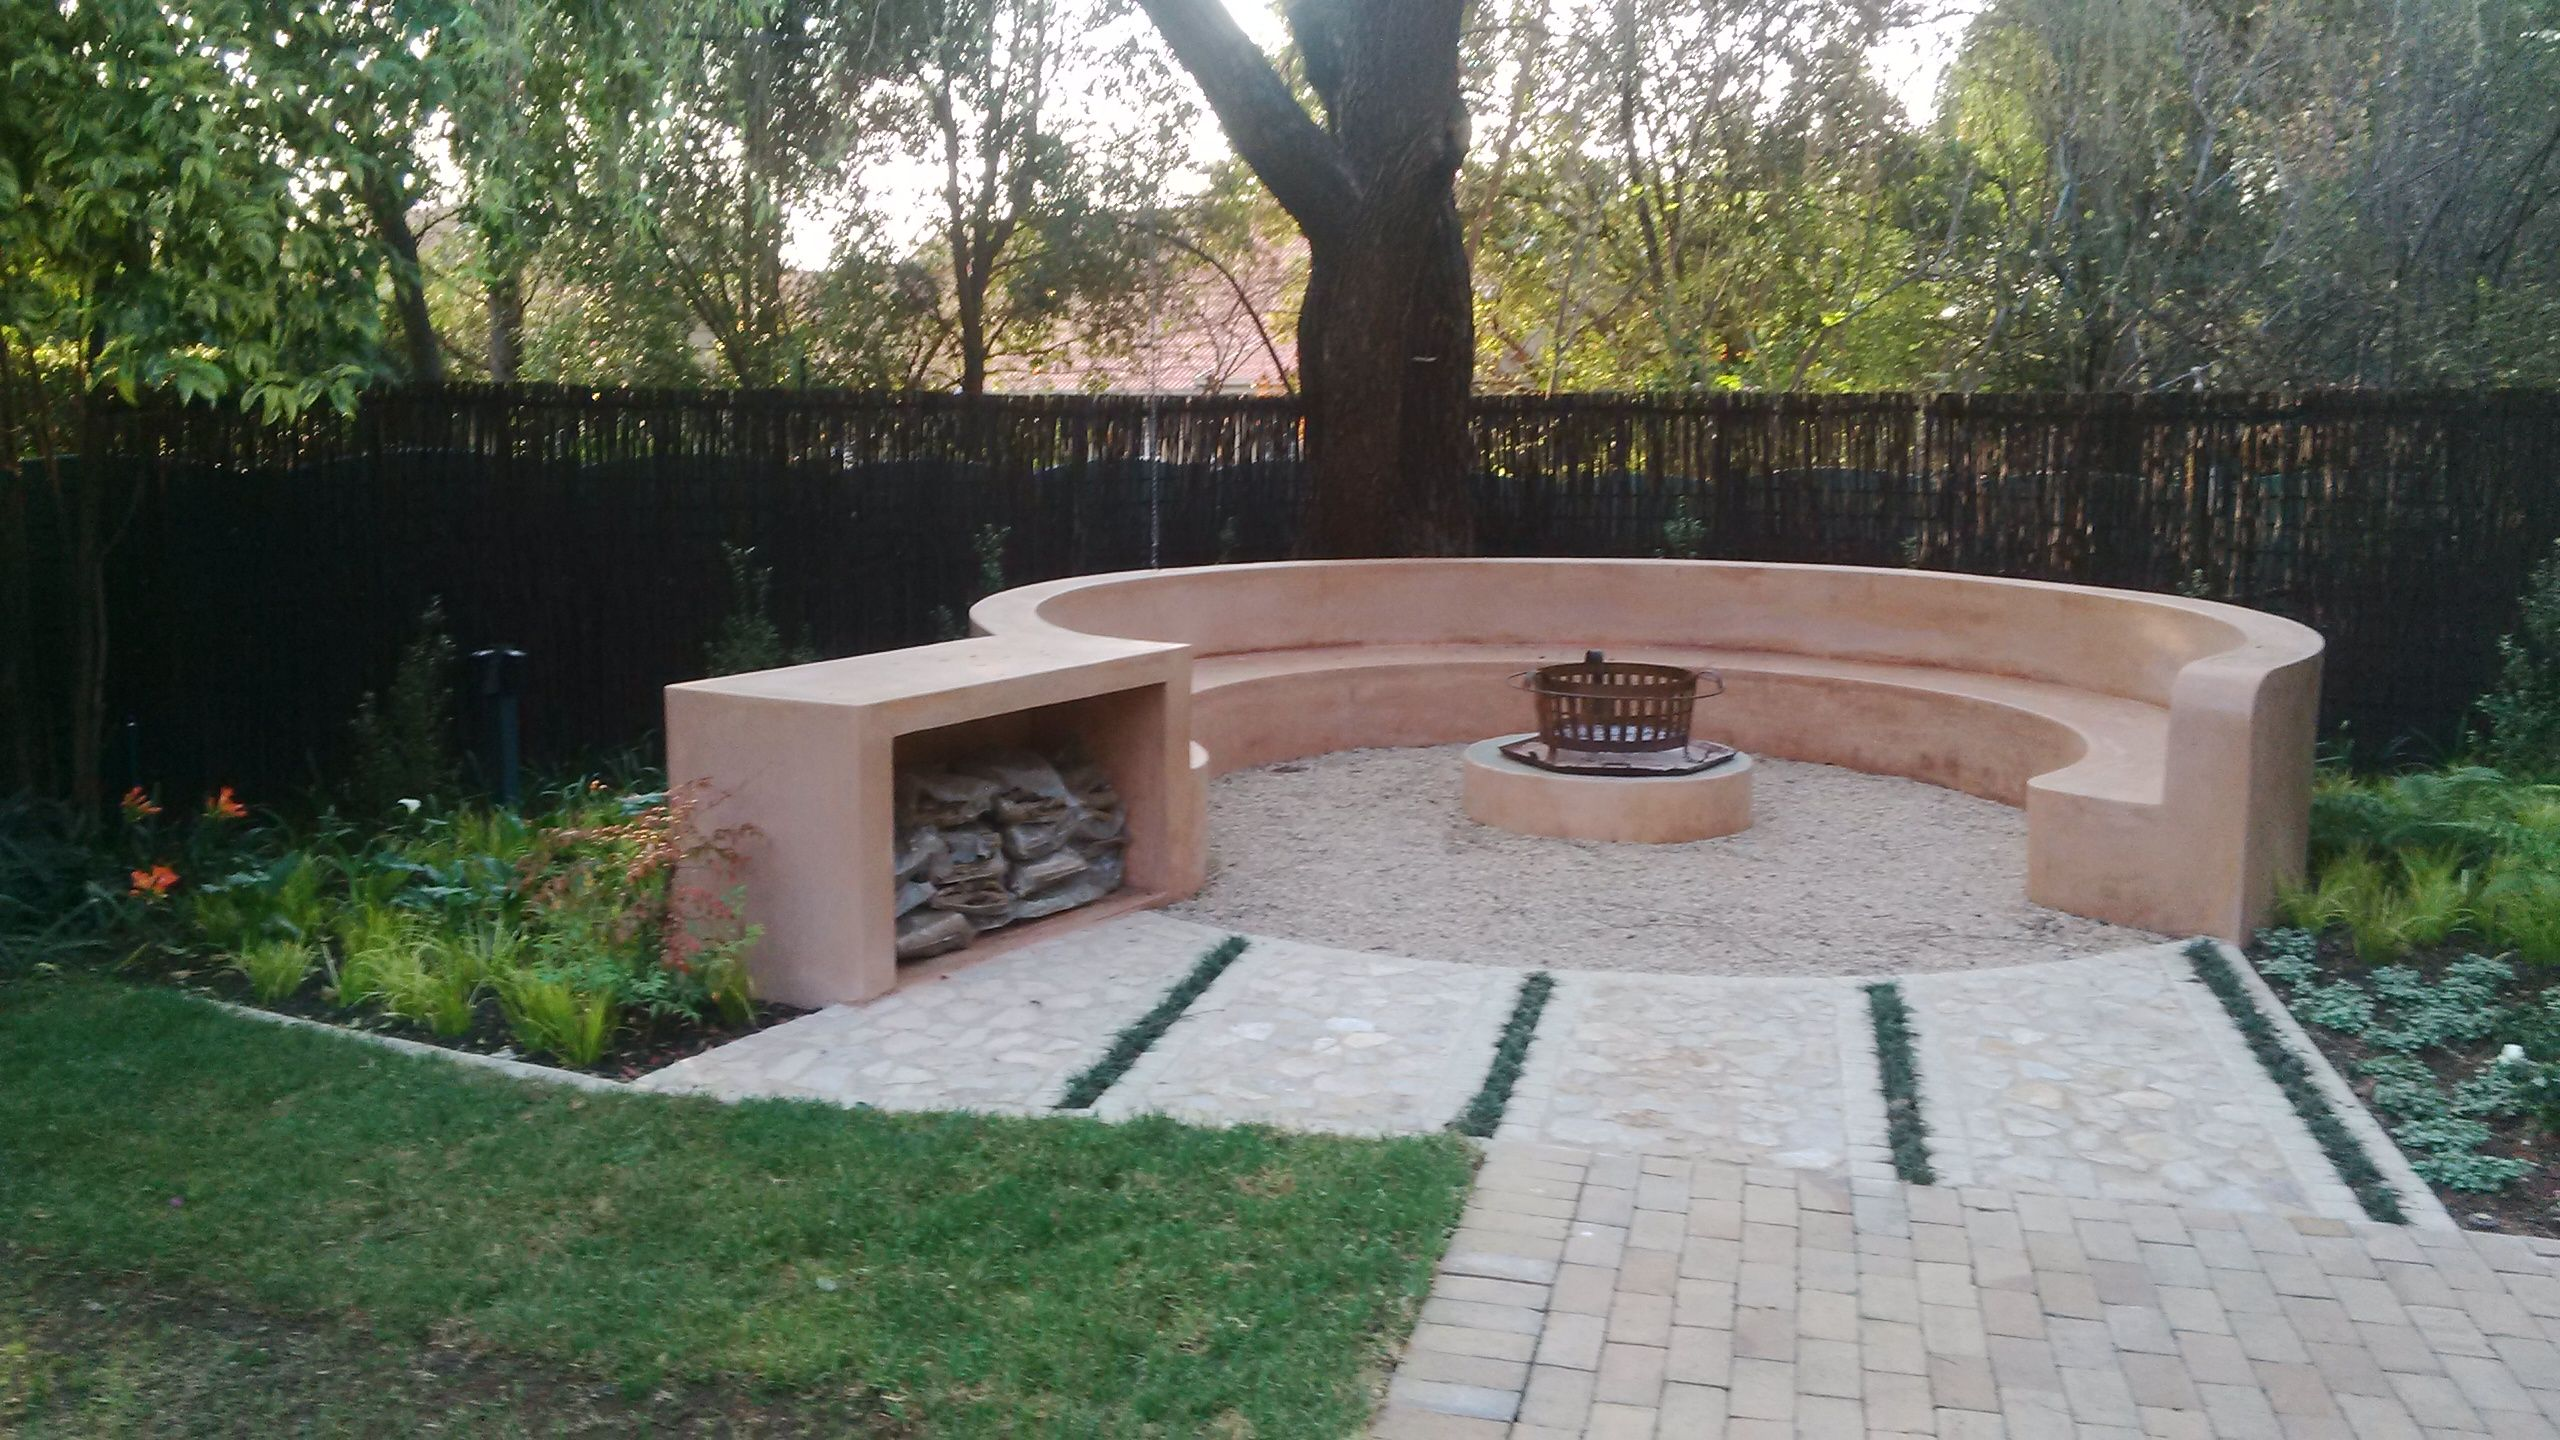 Fire Pits and Entertainment Areas | Backyard fire, Fire ... on Modern Boma Ideas id=51126